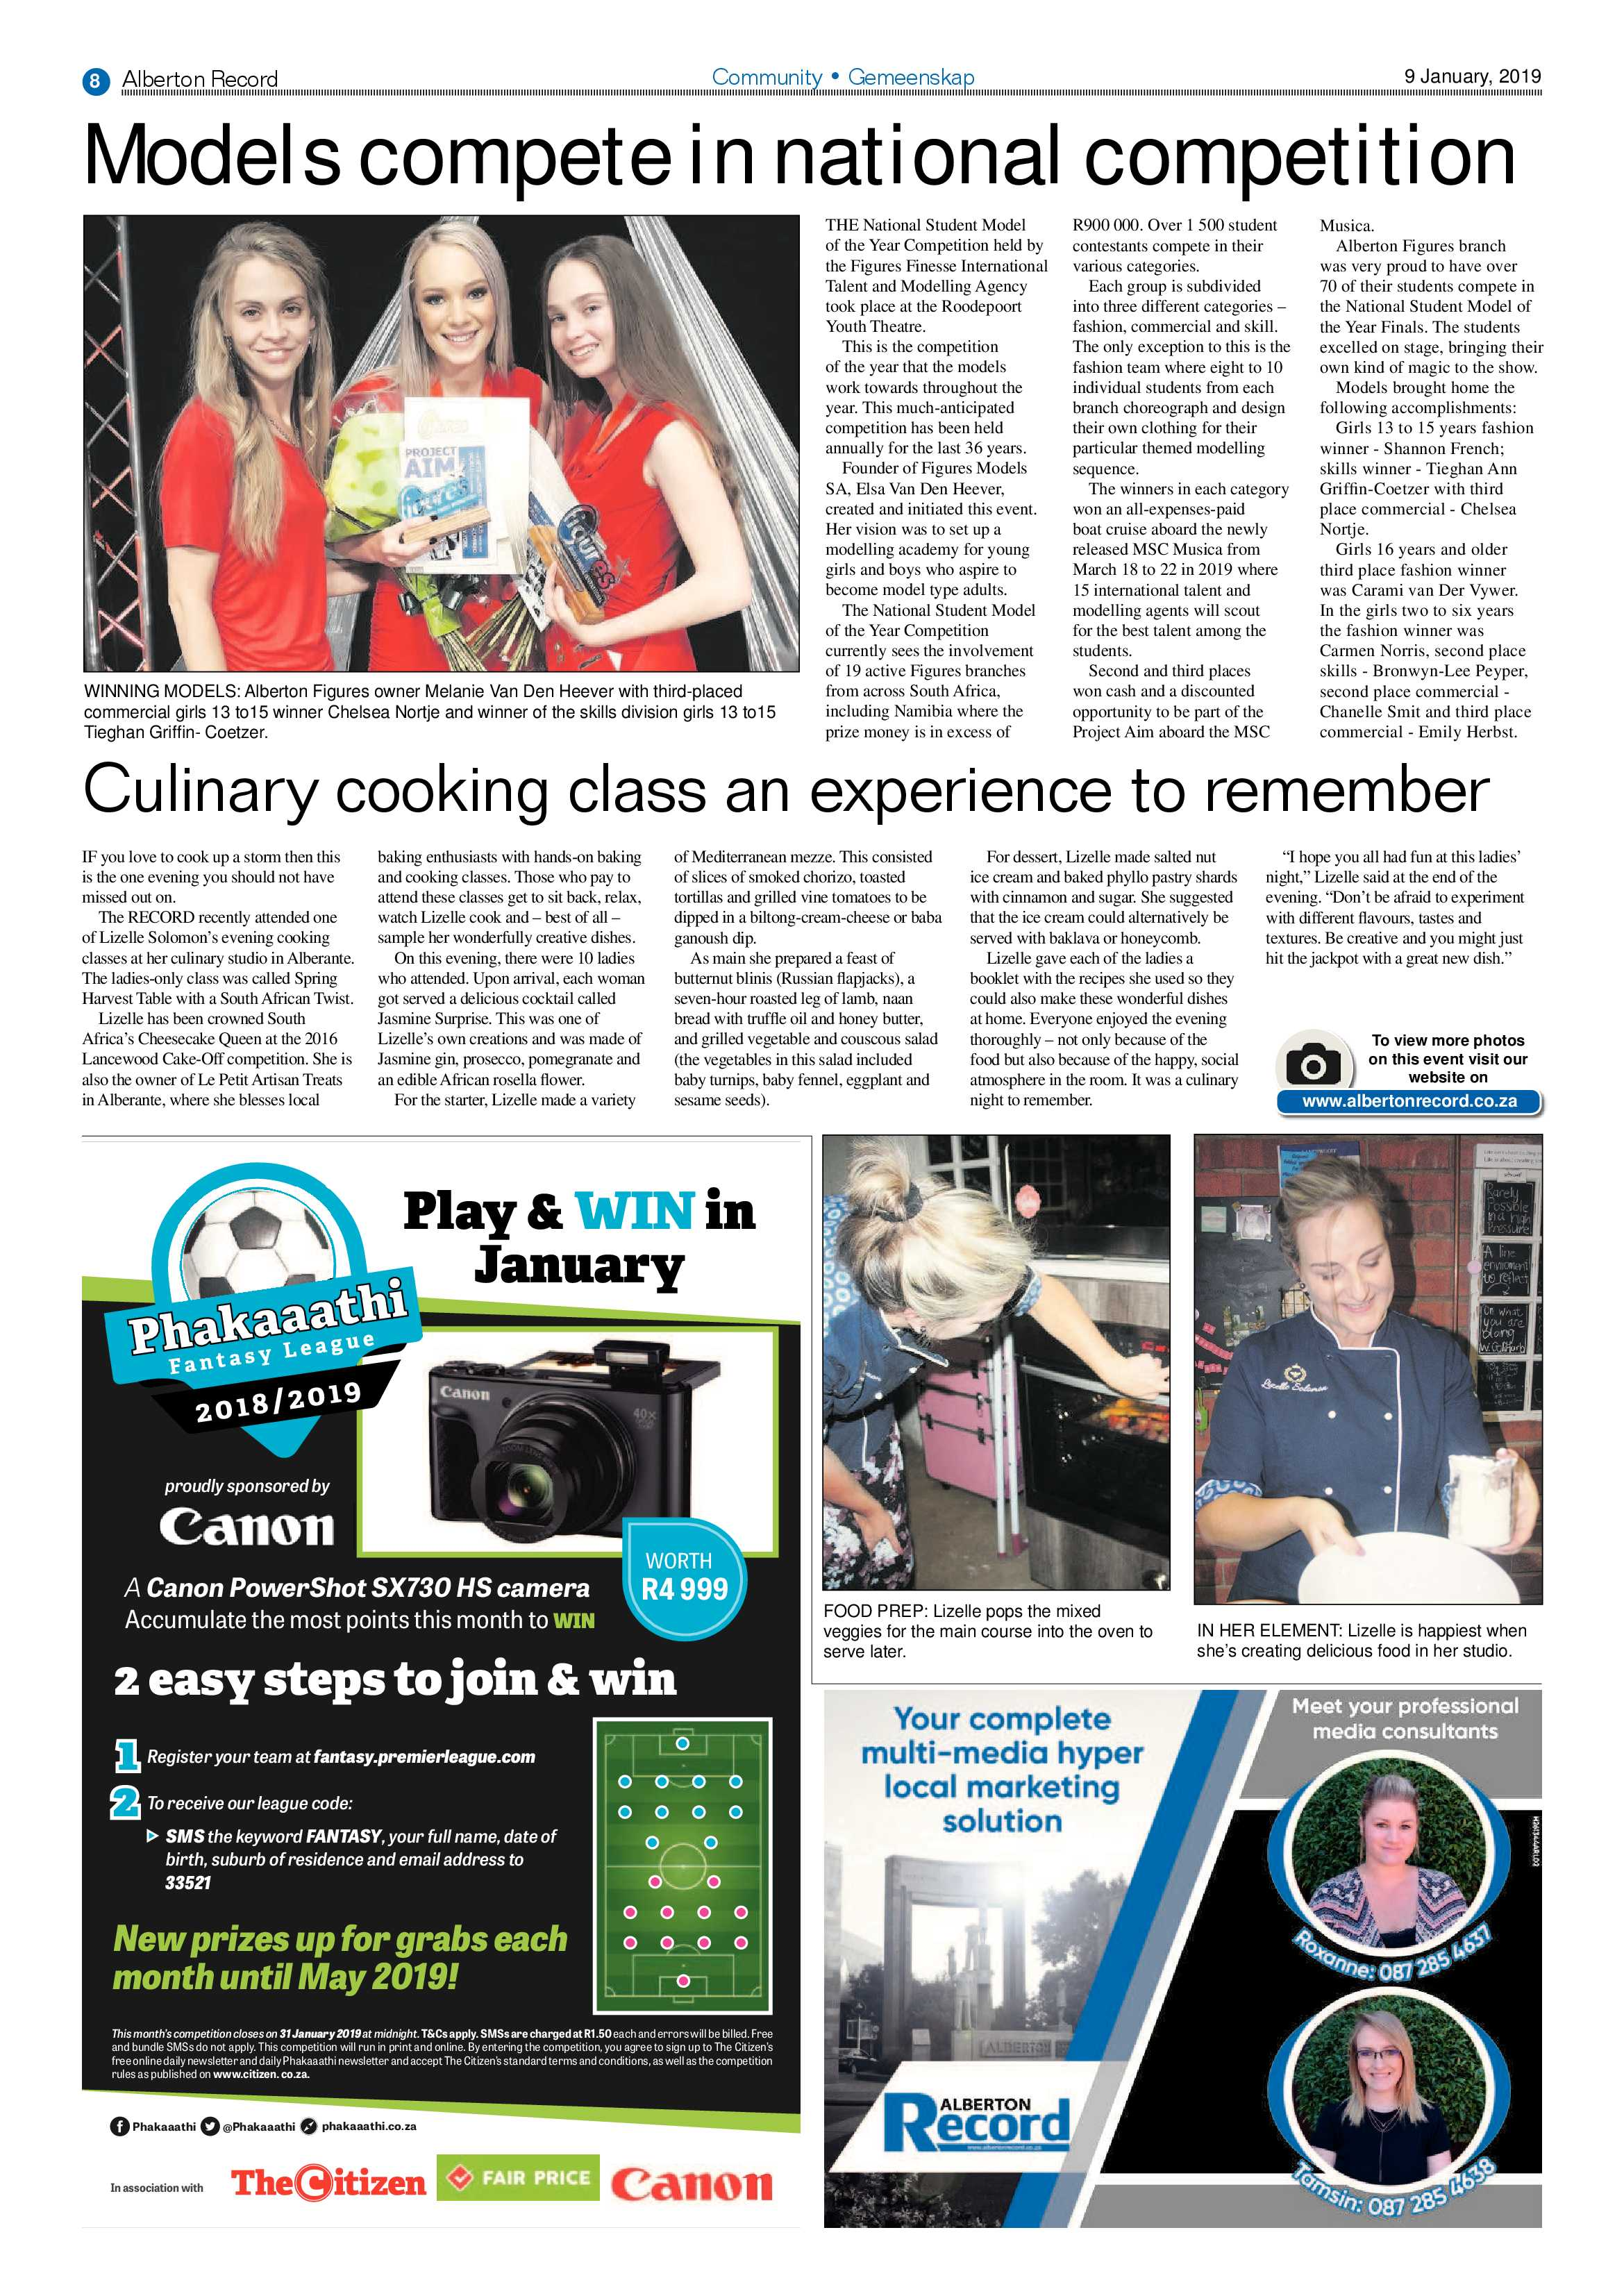 alberton-record-09-january-2019-epapers-page-8